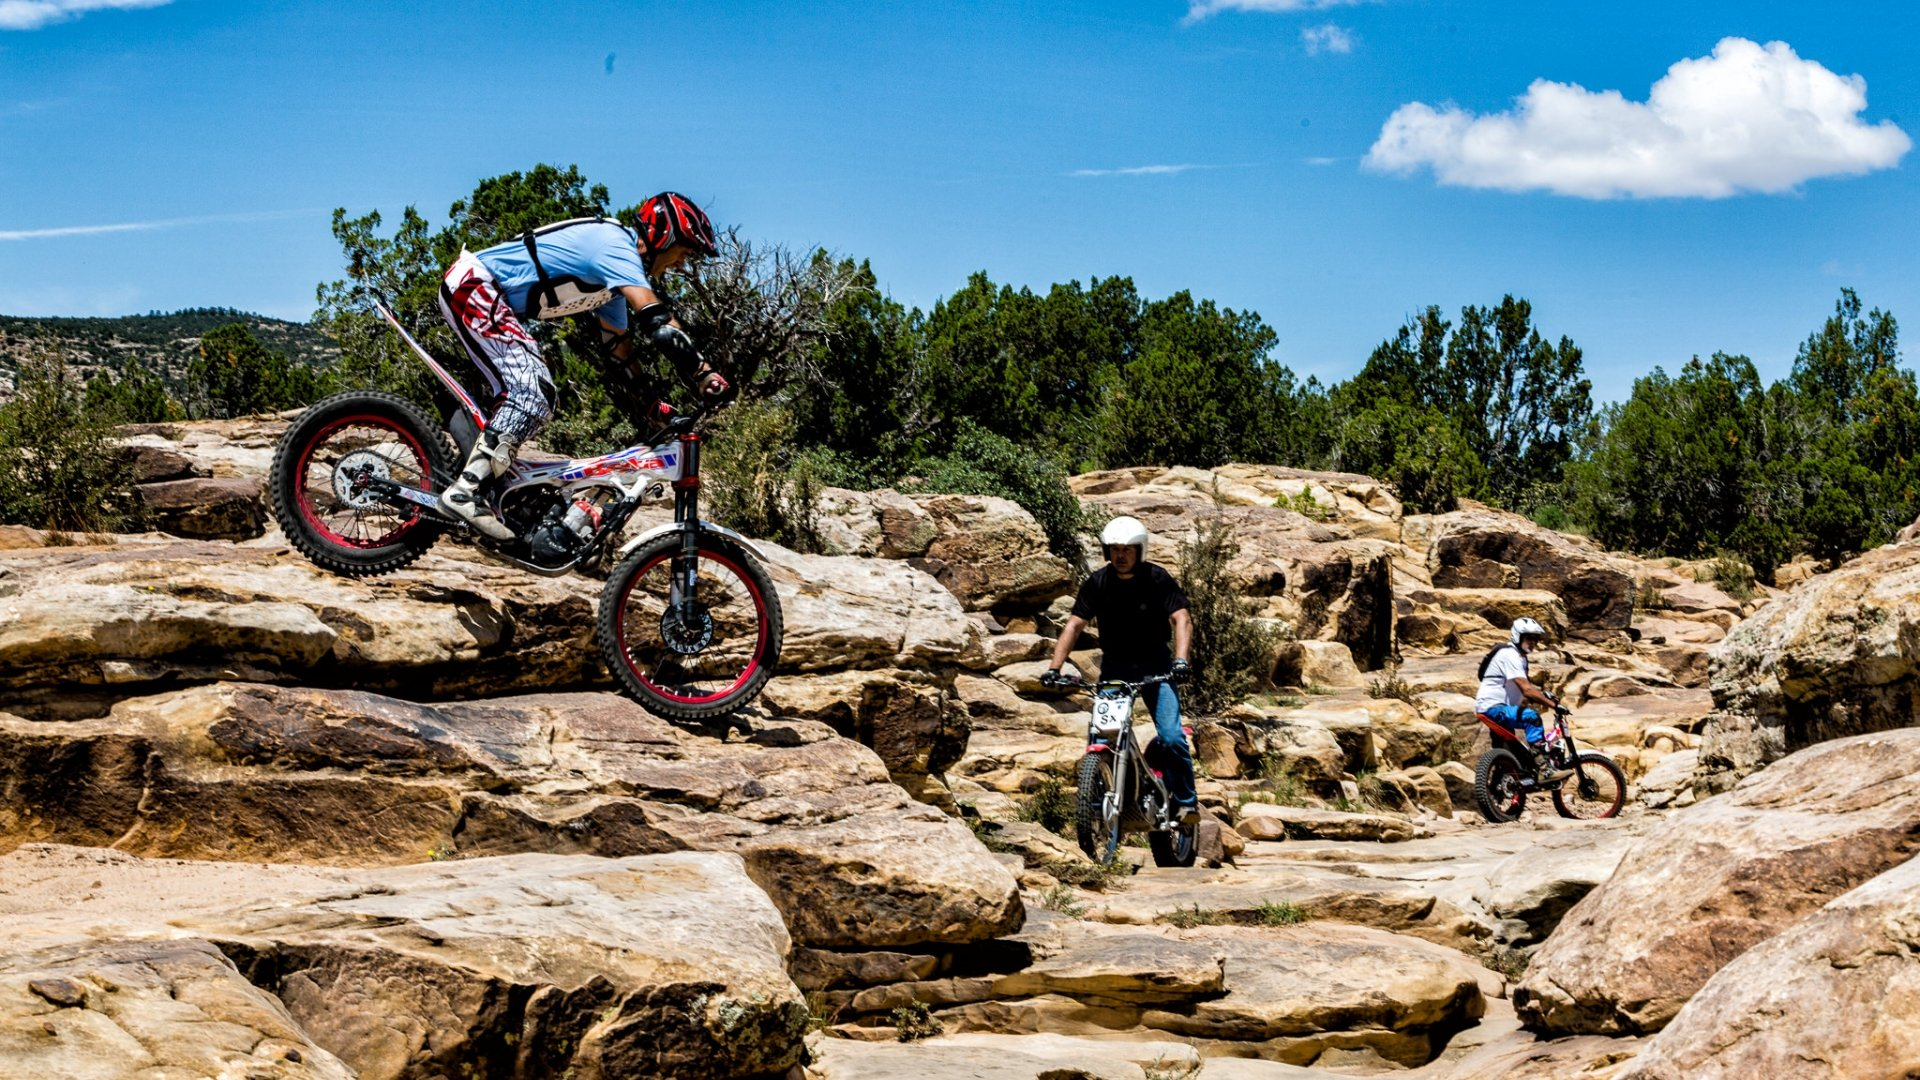 3 Trial Bikers on the sandstone rocky trails of San Ysidro Trails Area